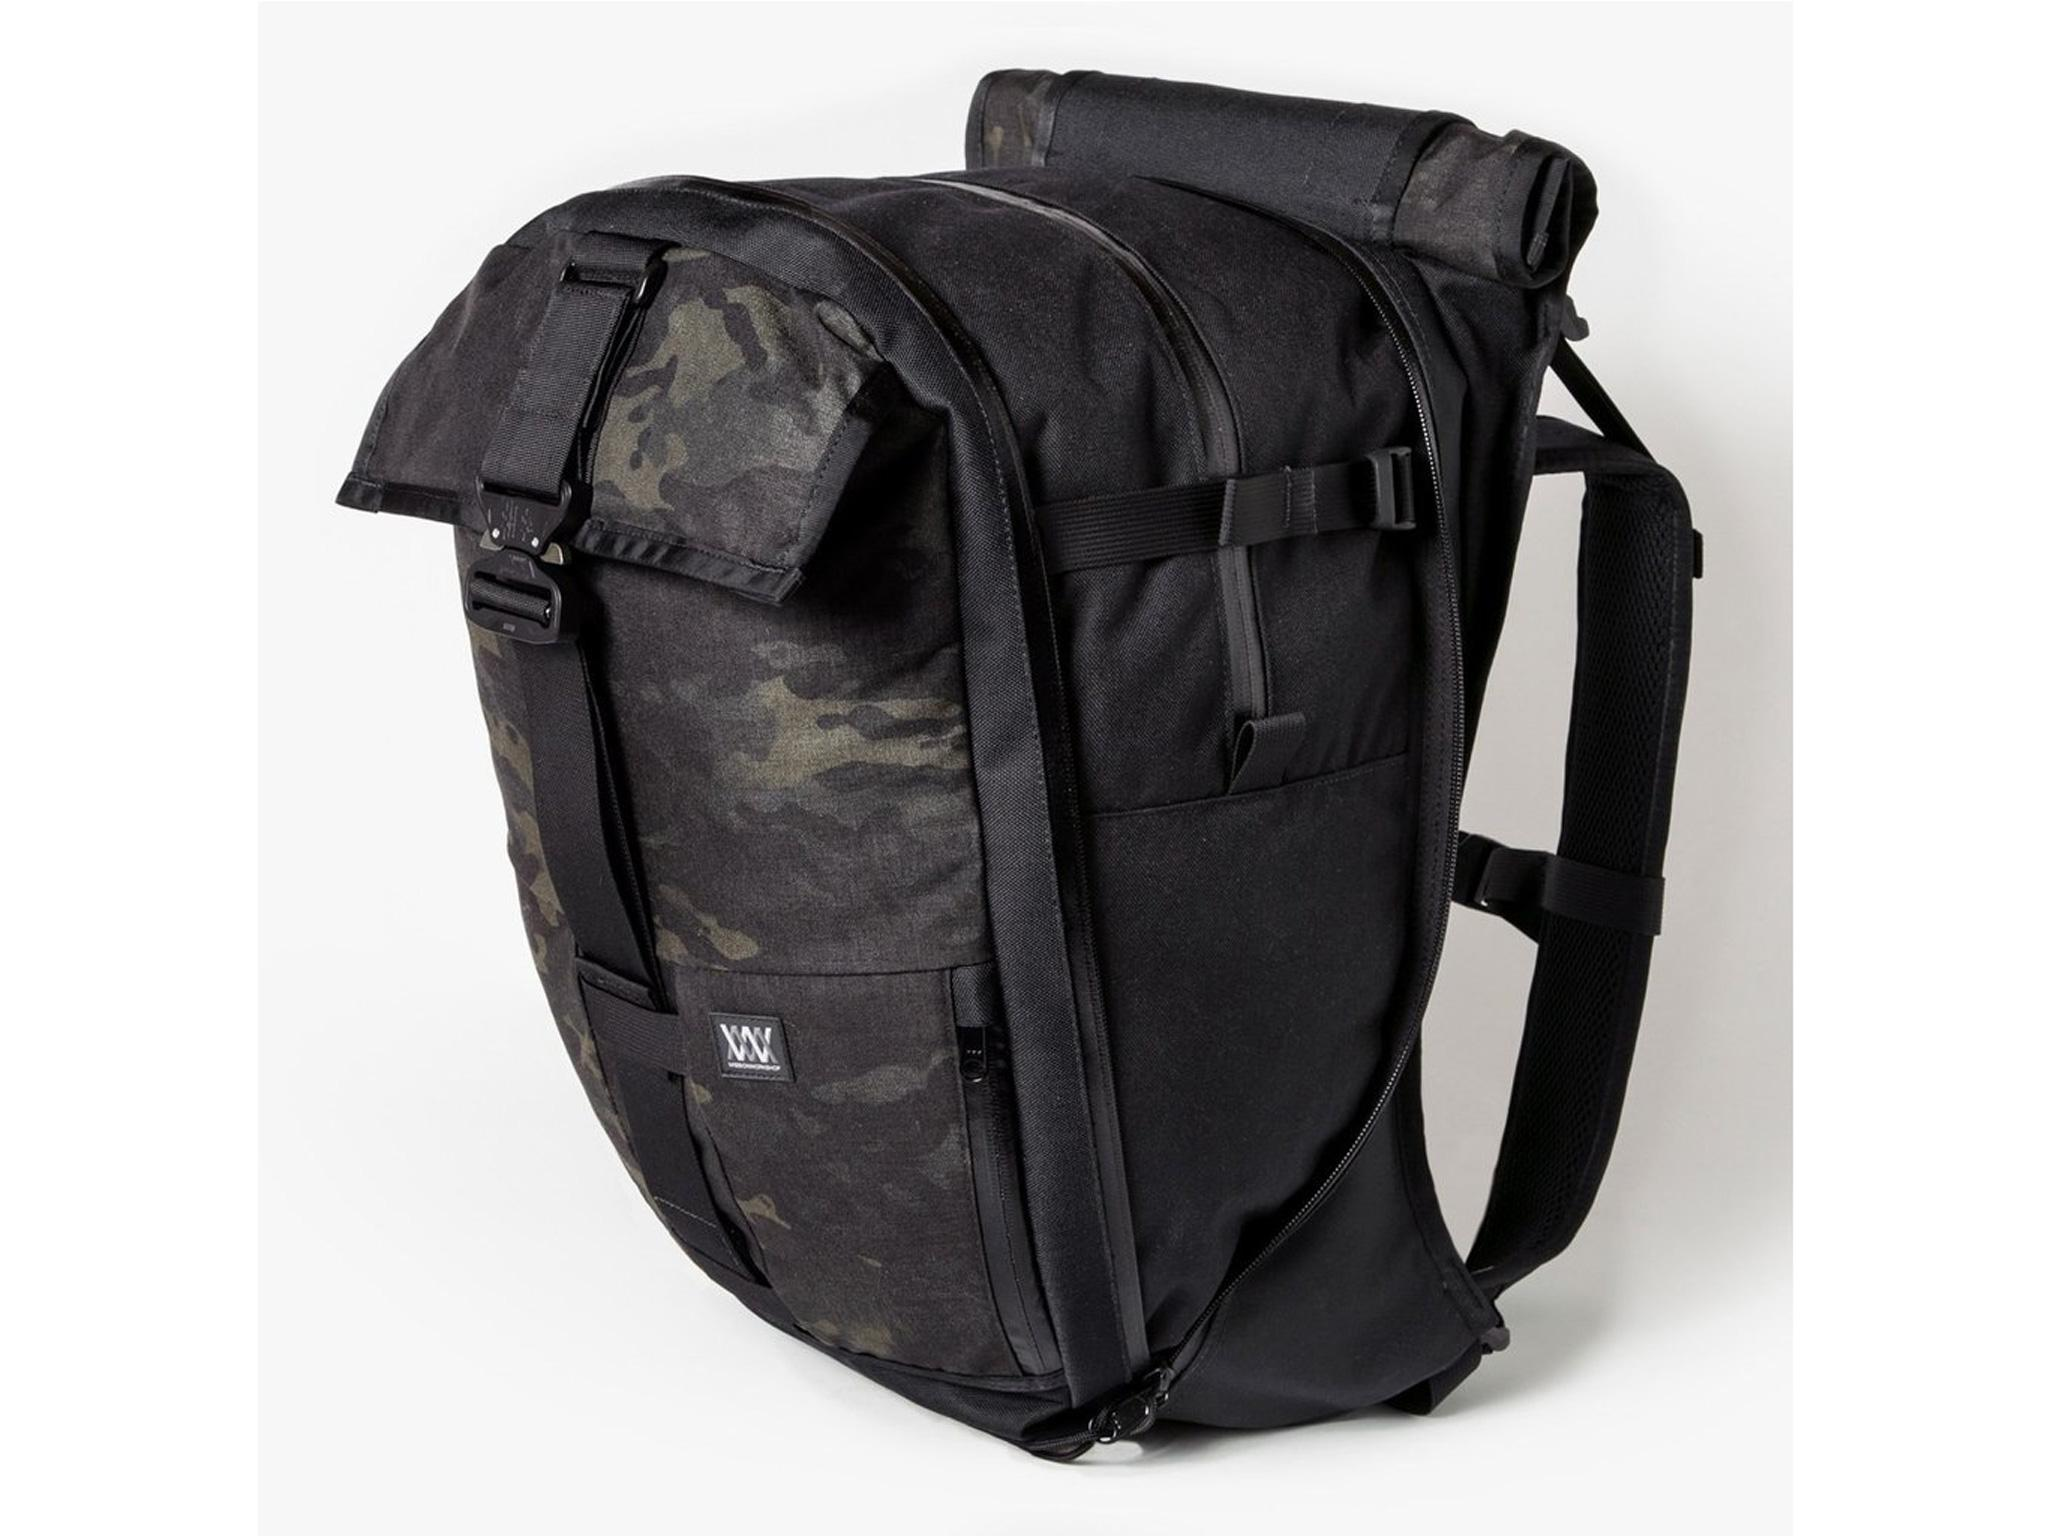 5aba58b6e4 This beast of a rucksack expands from 22L to a hulking 44L